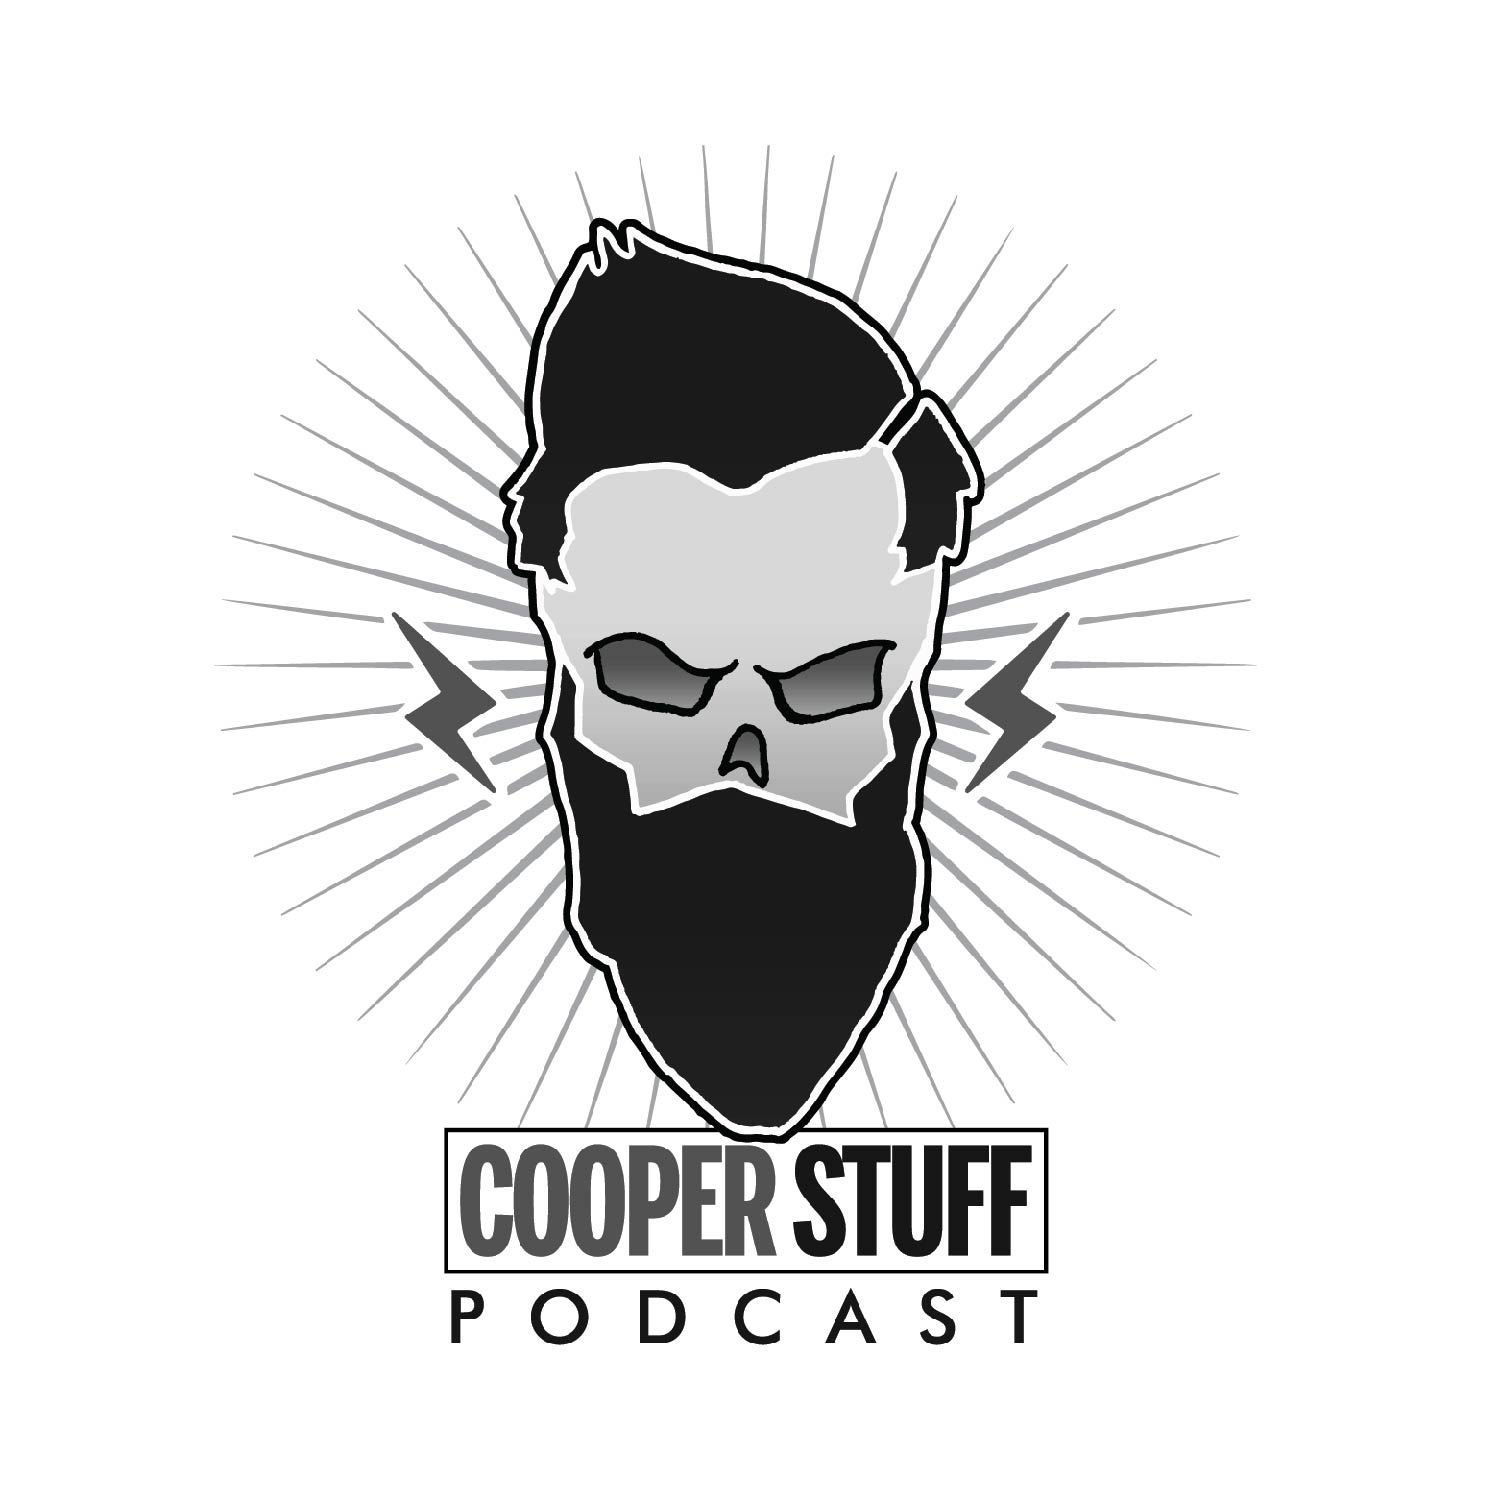 Artwork for Cooper Stuff Podcast: To Infinity and Beyond